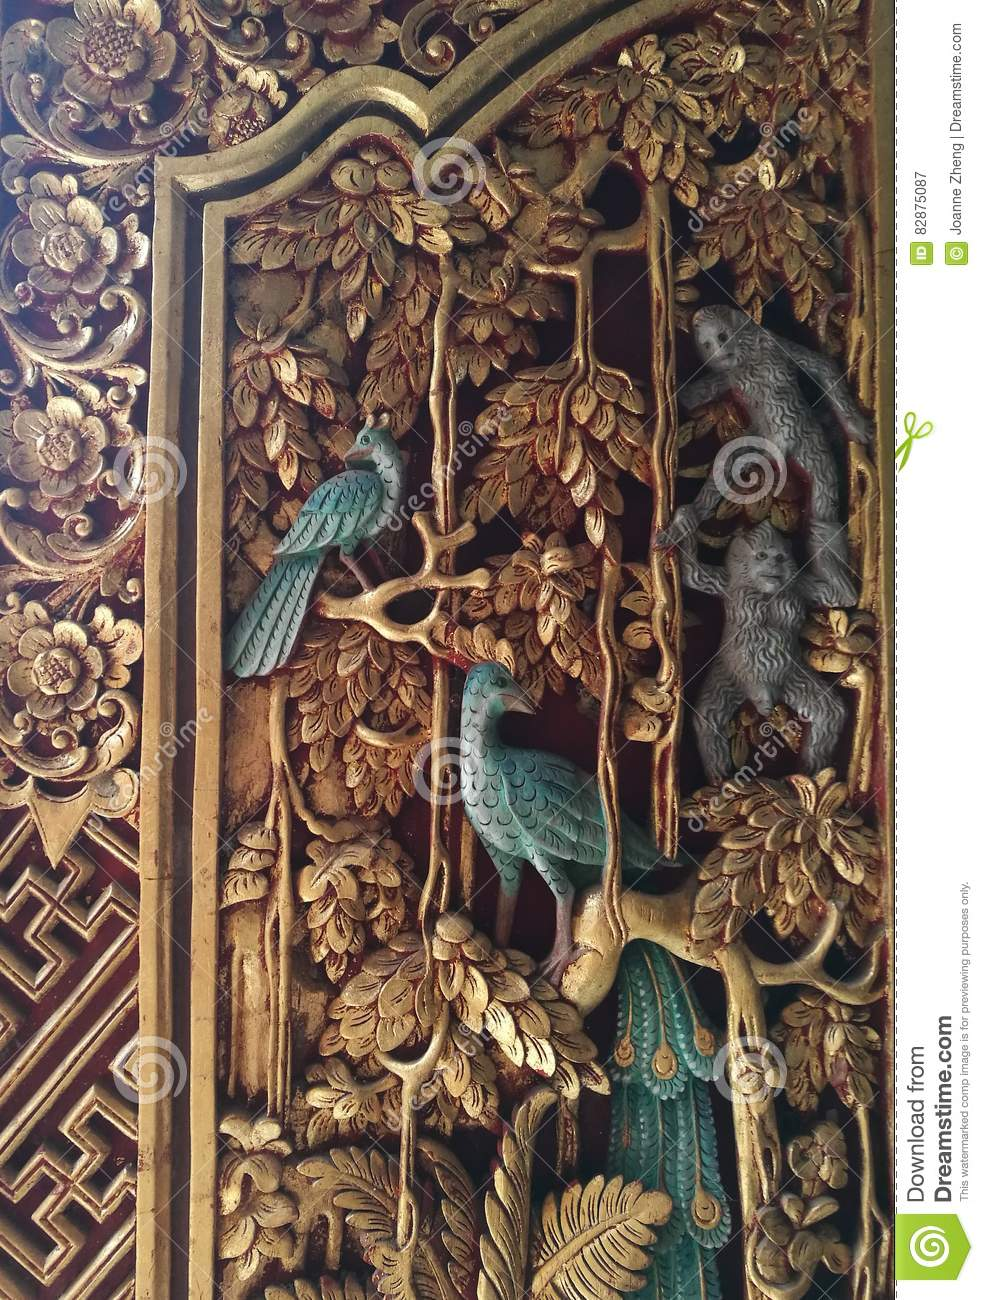 Antique balinese ornate carved wood door stock image